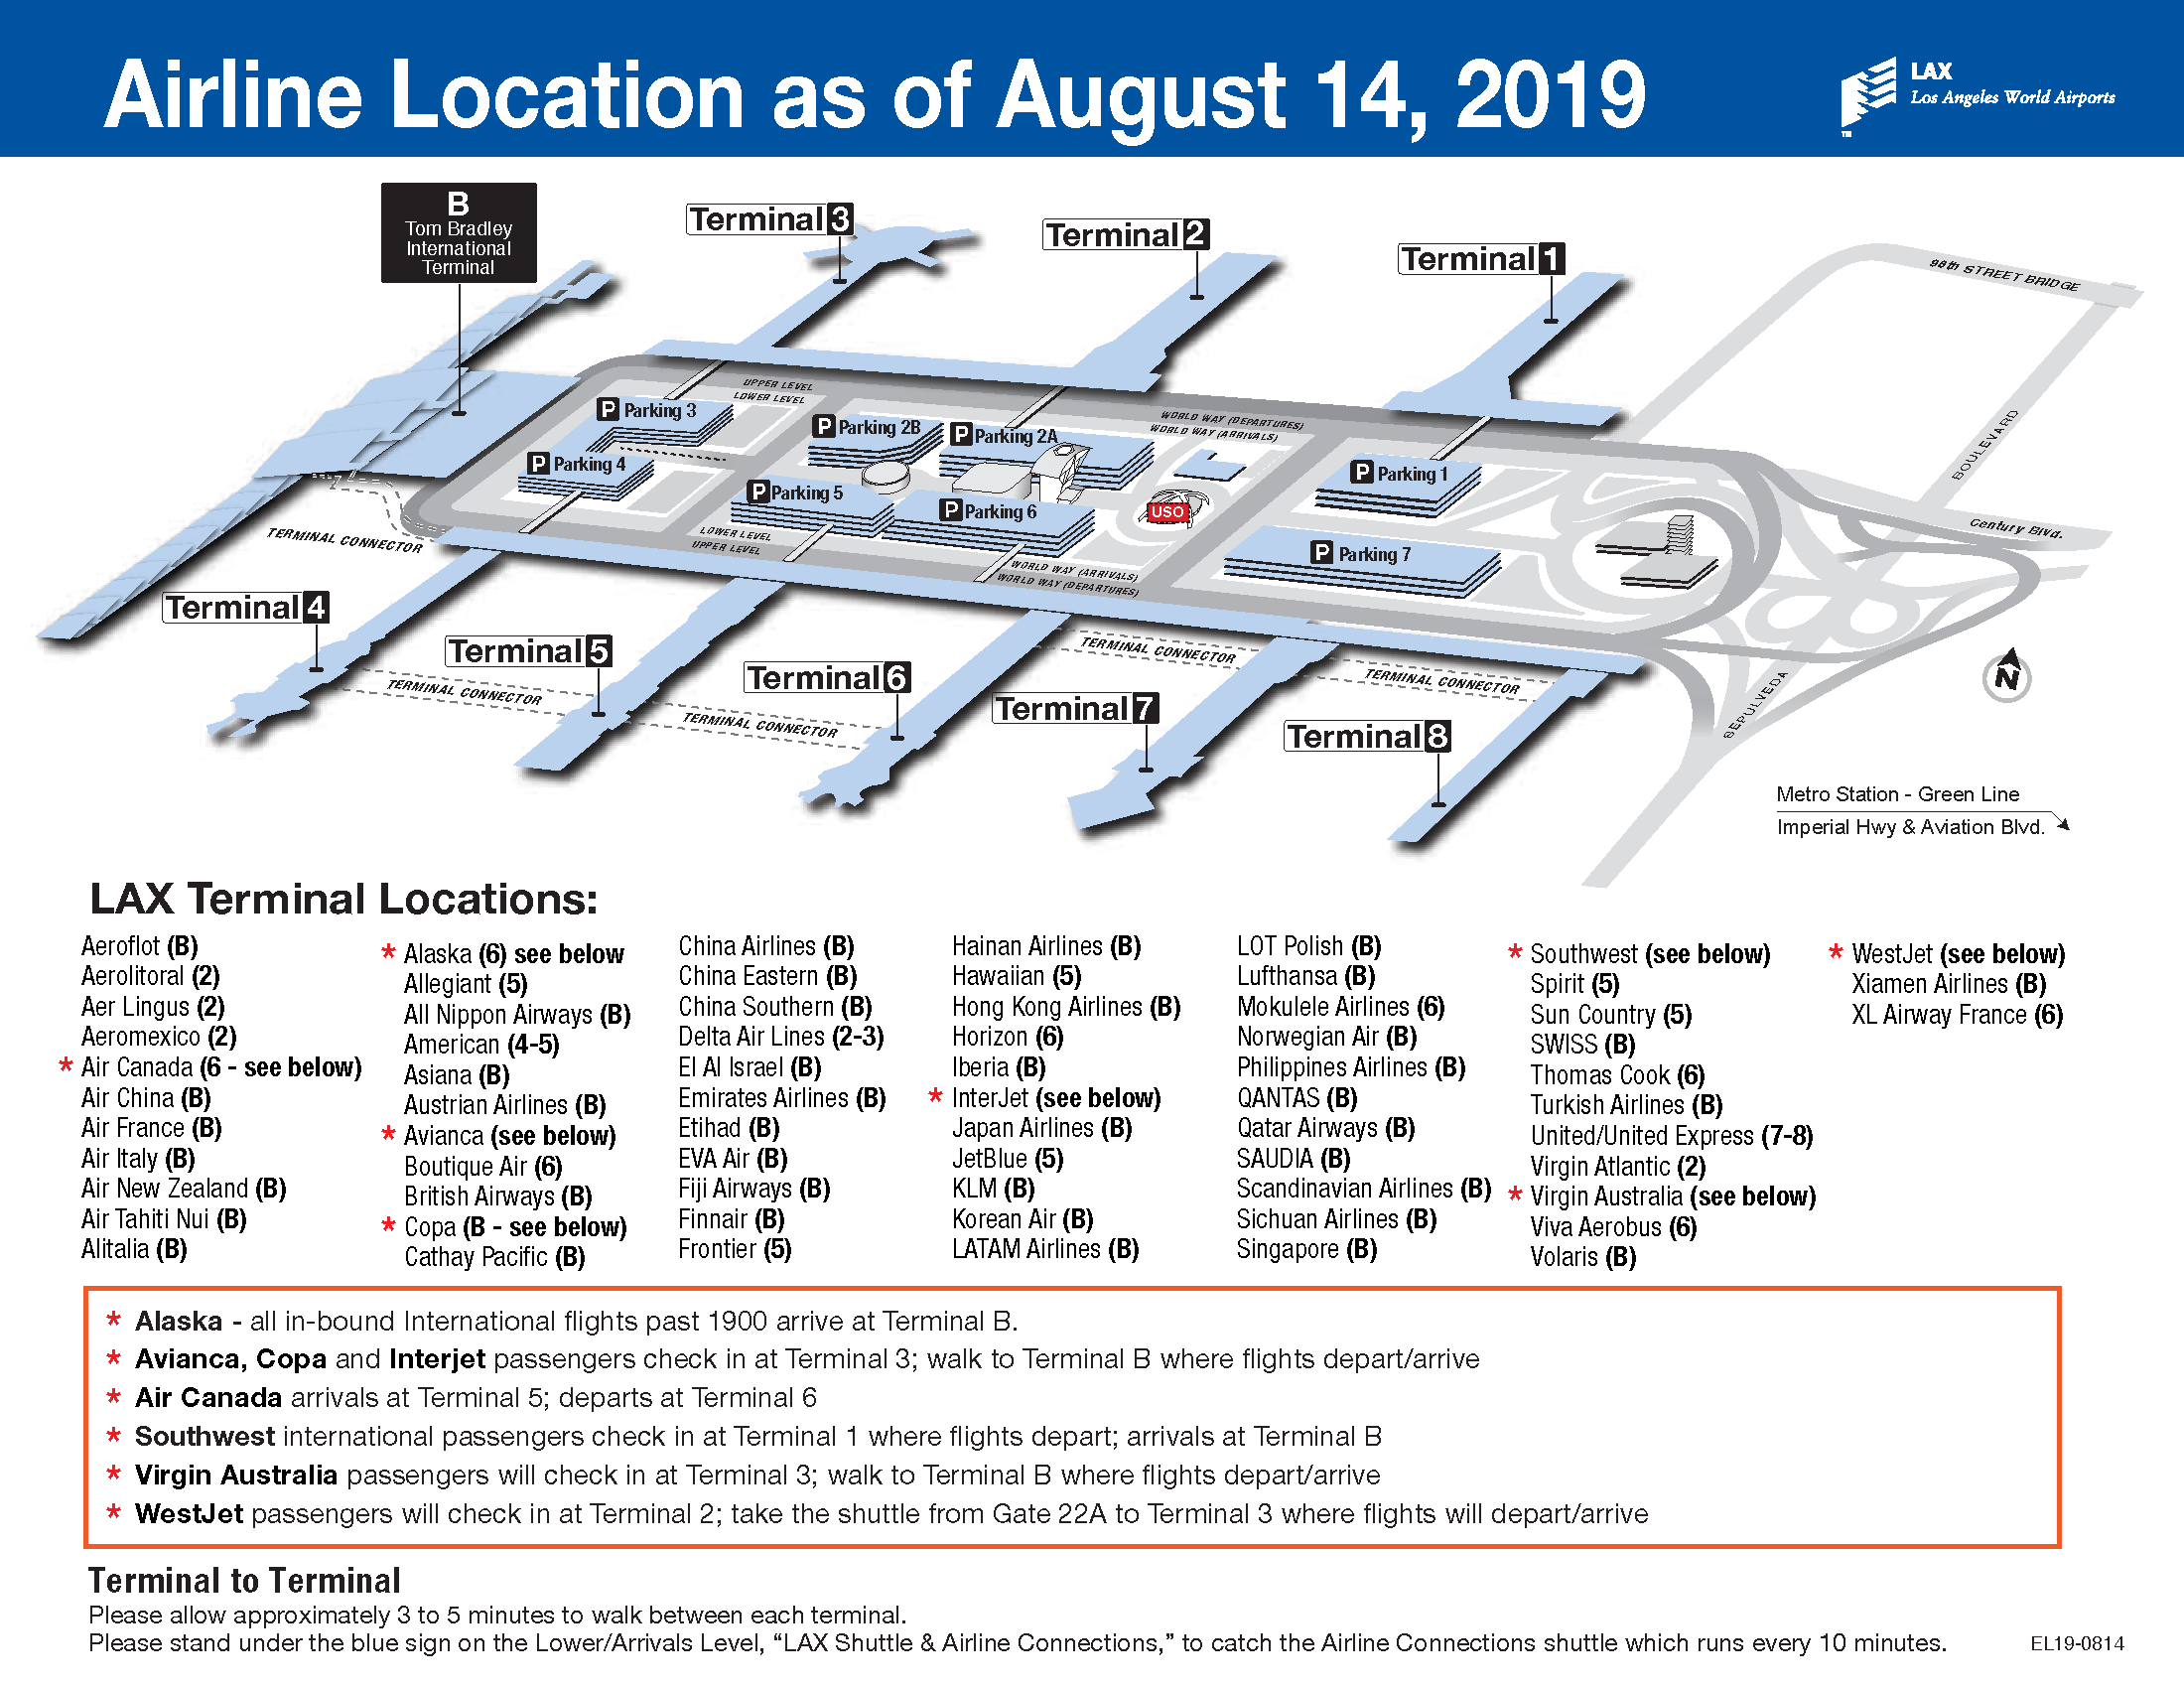 LAX Airline Location Map August 2019